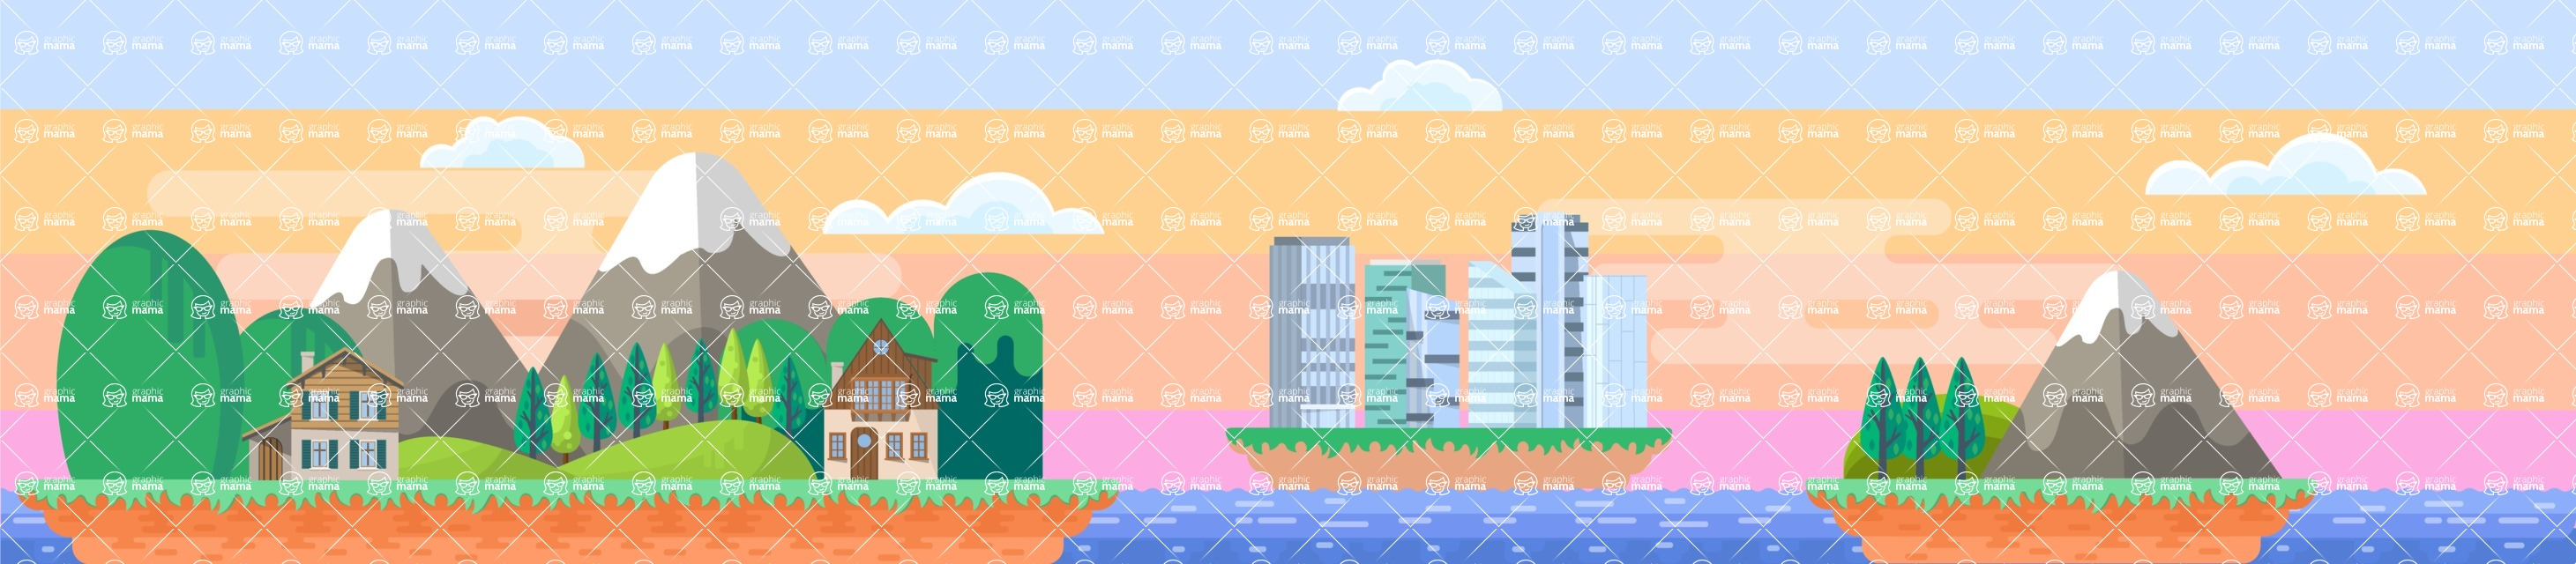 Background Vector Creation pack. A rich collection of flat vector elements for nature landscapes, city skylines, futuristic towns, fantastic scenes.  - Backgrounds 55